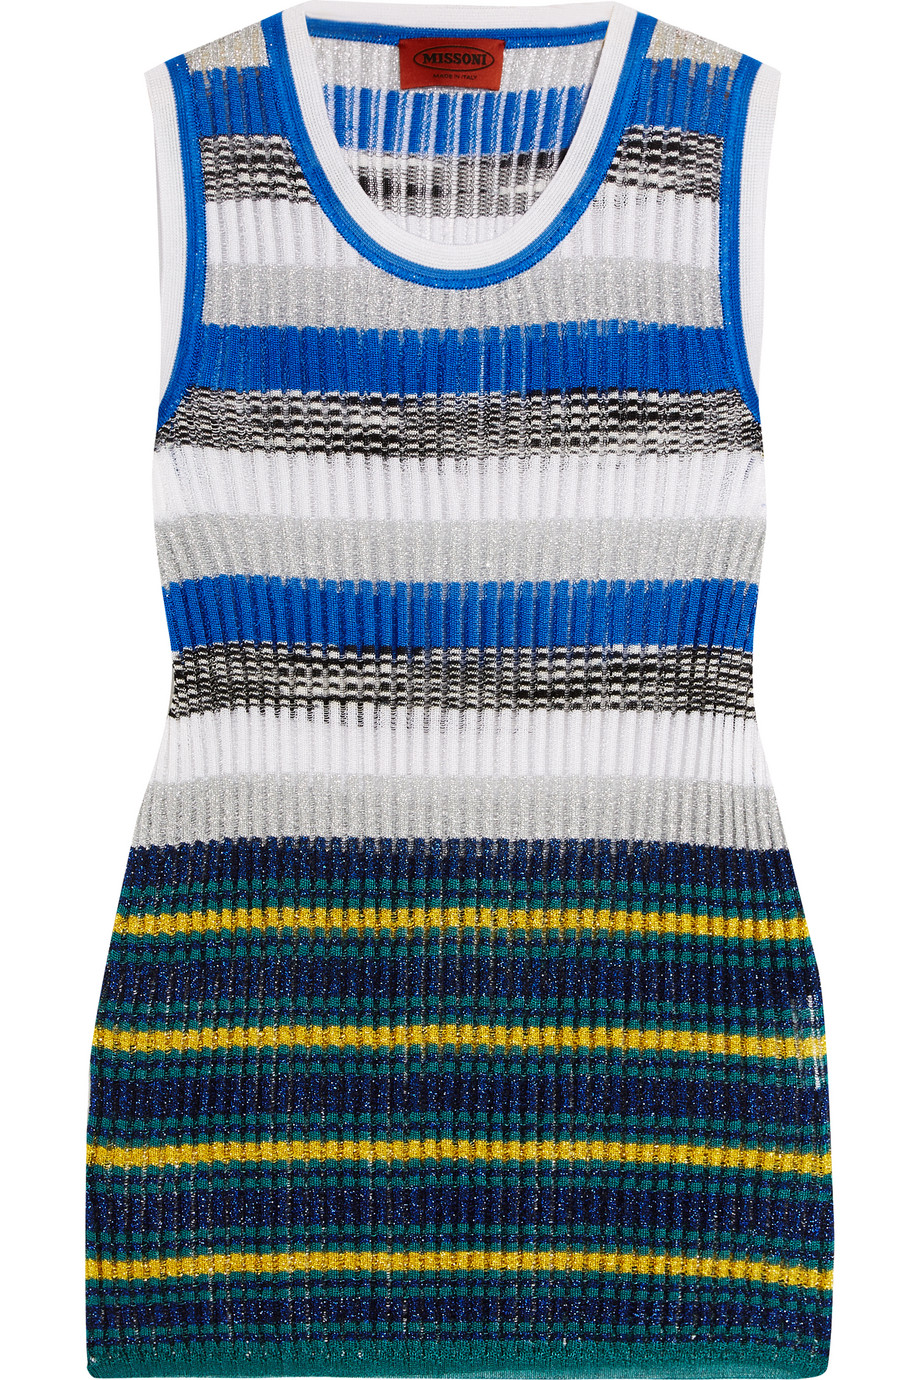 Missoni Metallic Striped Crochet-Knit Tank, Blue, Women's, Size: 46